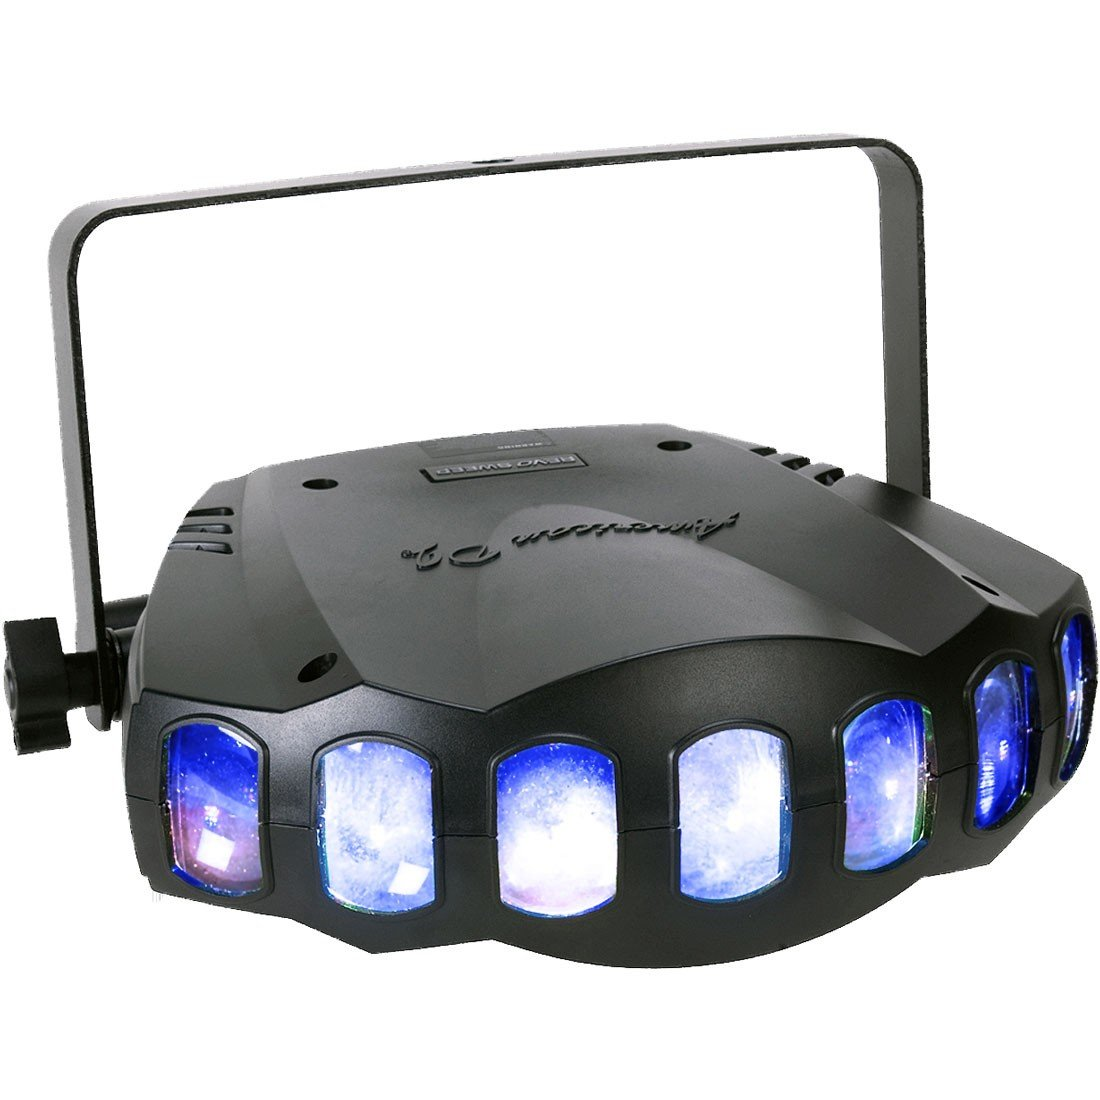 Amazon.com American DJ Revo Sweep LED Powered Effect Light Musical Instruments  sc 1 st  Amazon.com & Amazon.com: American DJ Revo Sweep LED Powered Effect Light ... azcodes.com